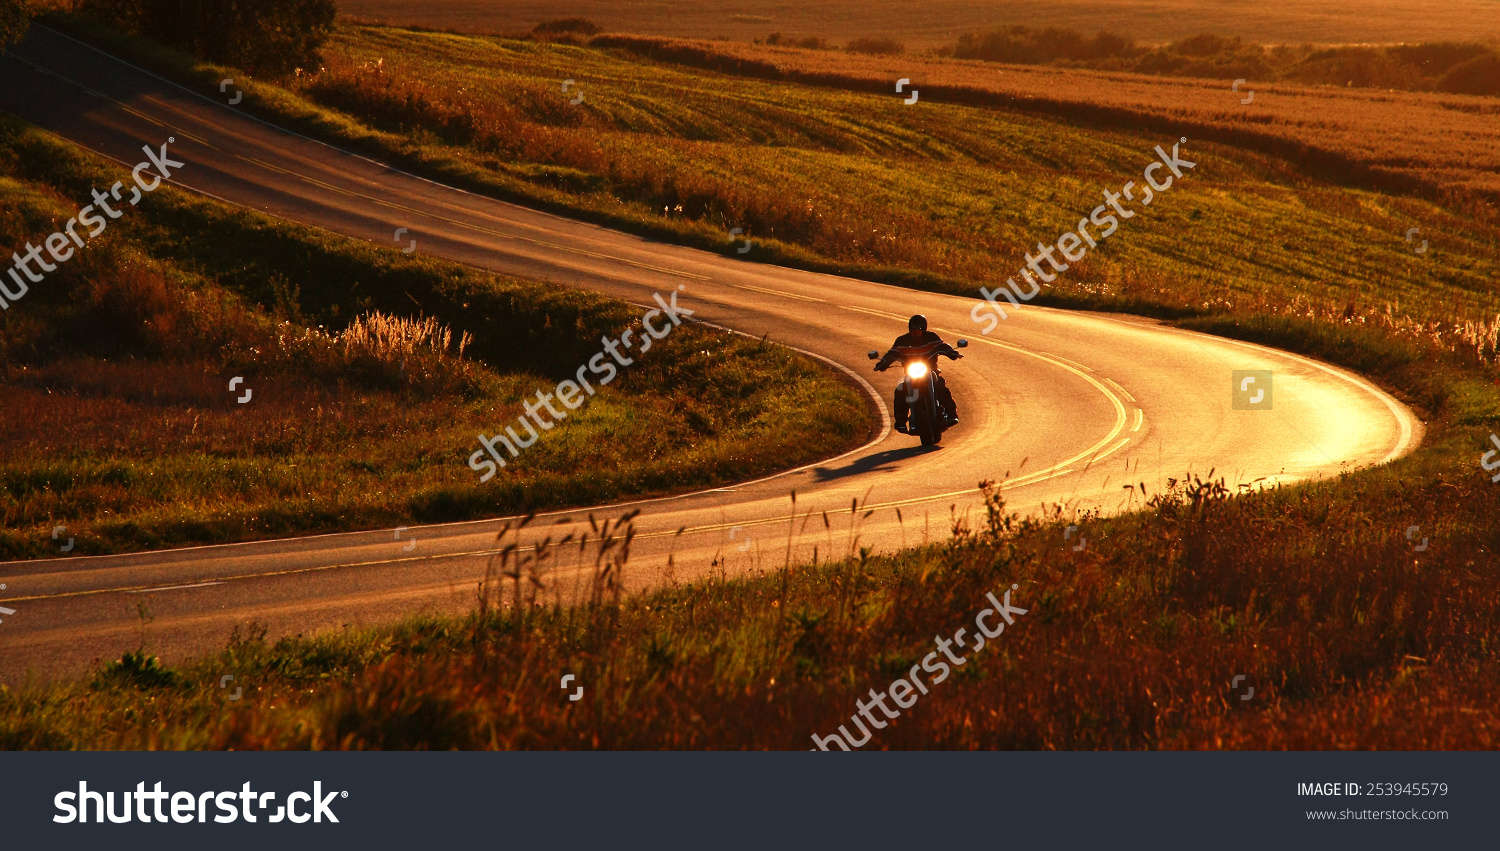 10 Motorcycle ride photo